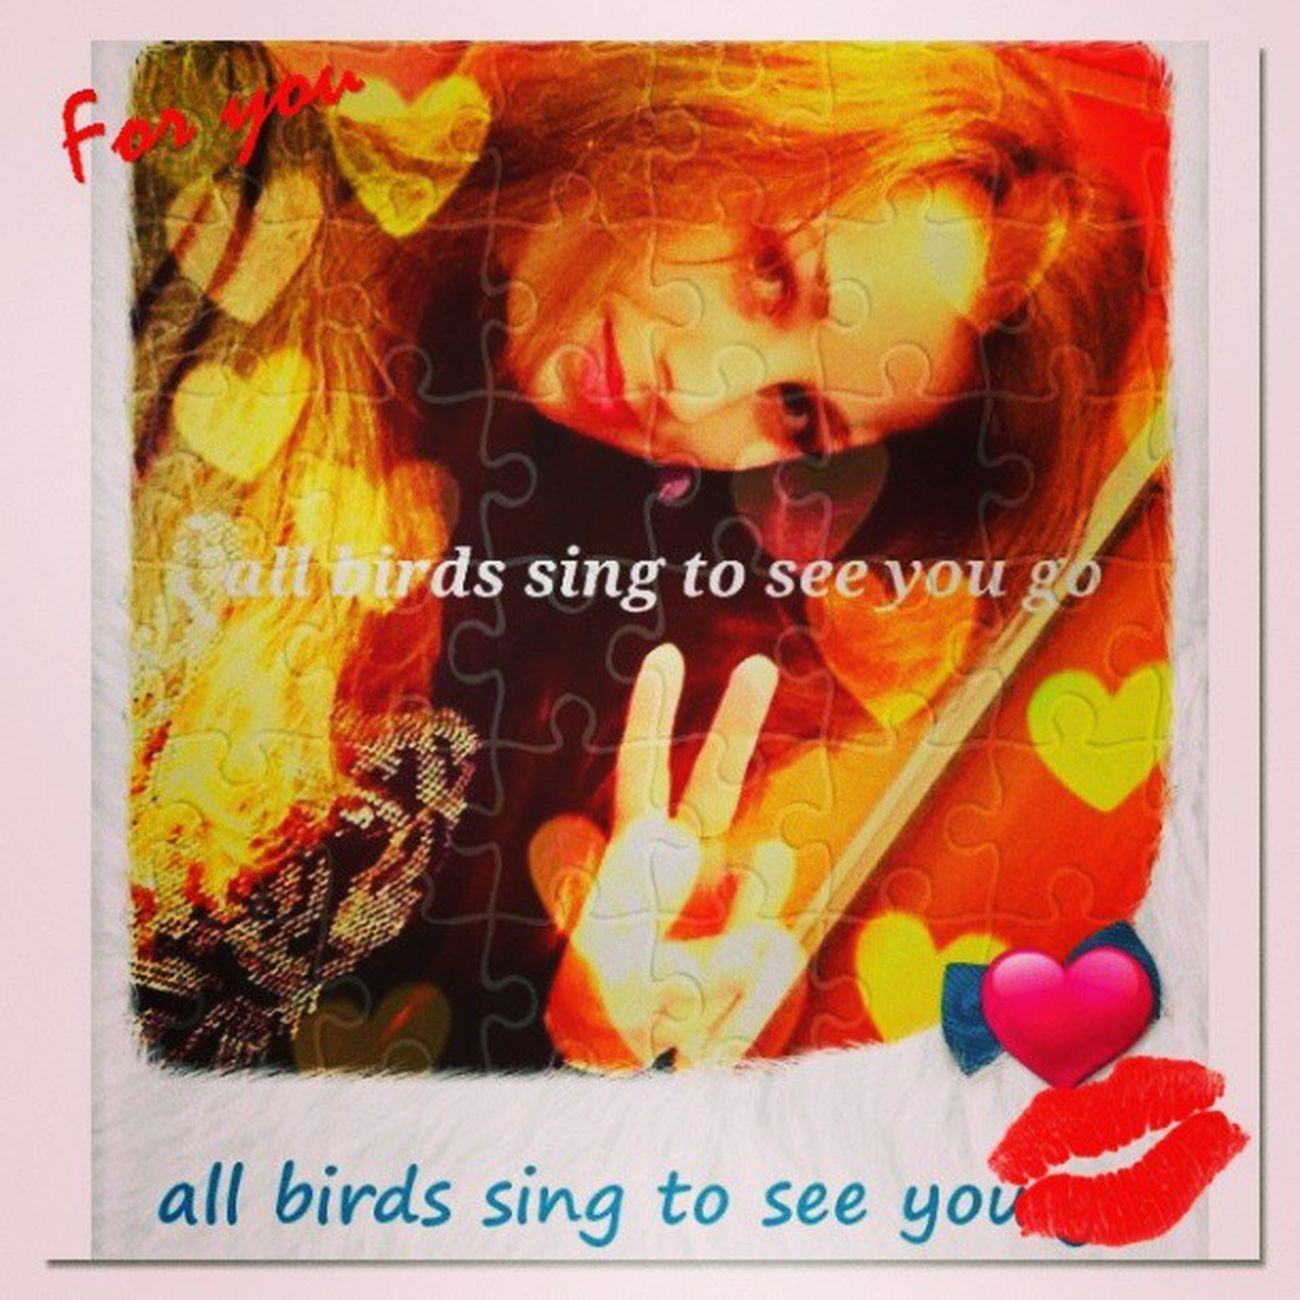 Nika ... all birds sing to see you go